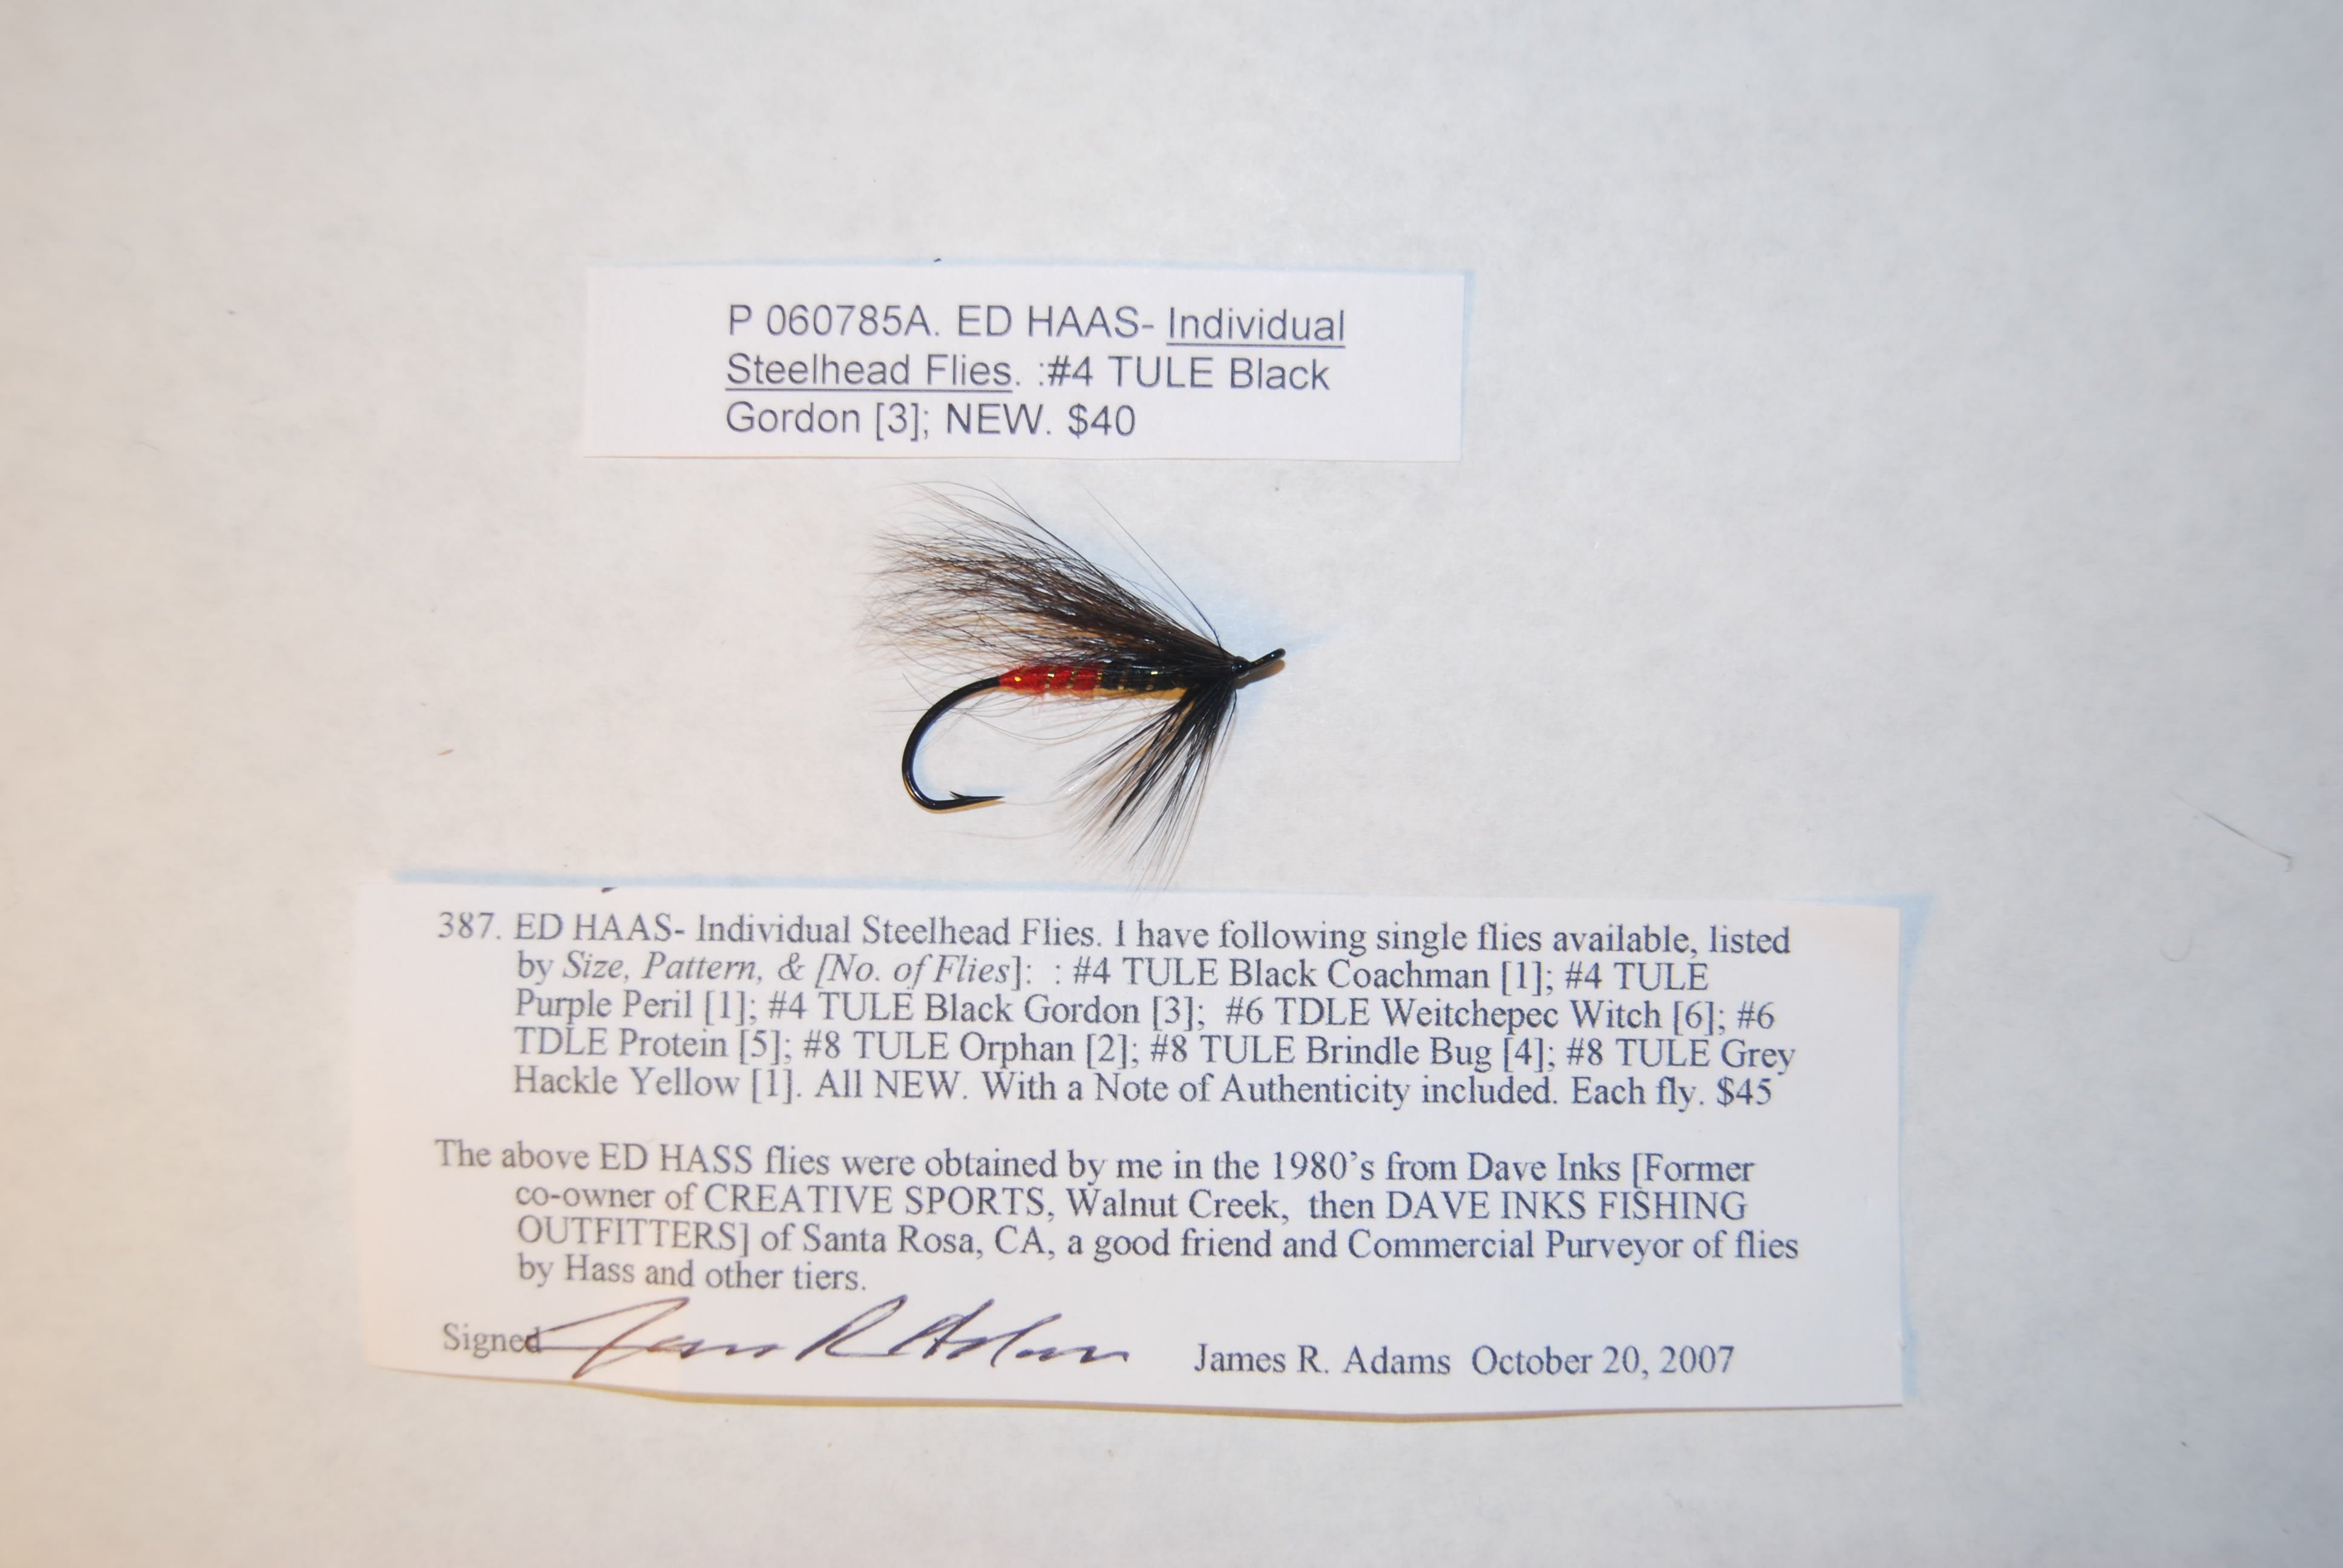 Image for ED HAAS- Individual Steelhead Flies. #4 TULE Black Gordon.